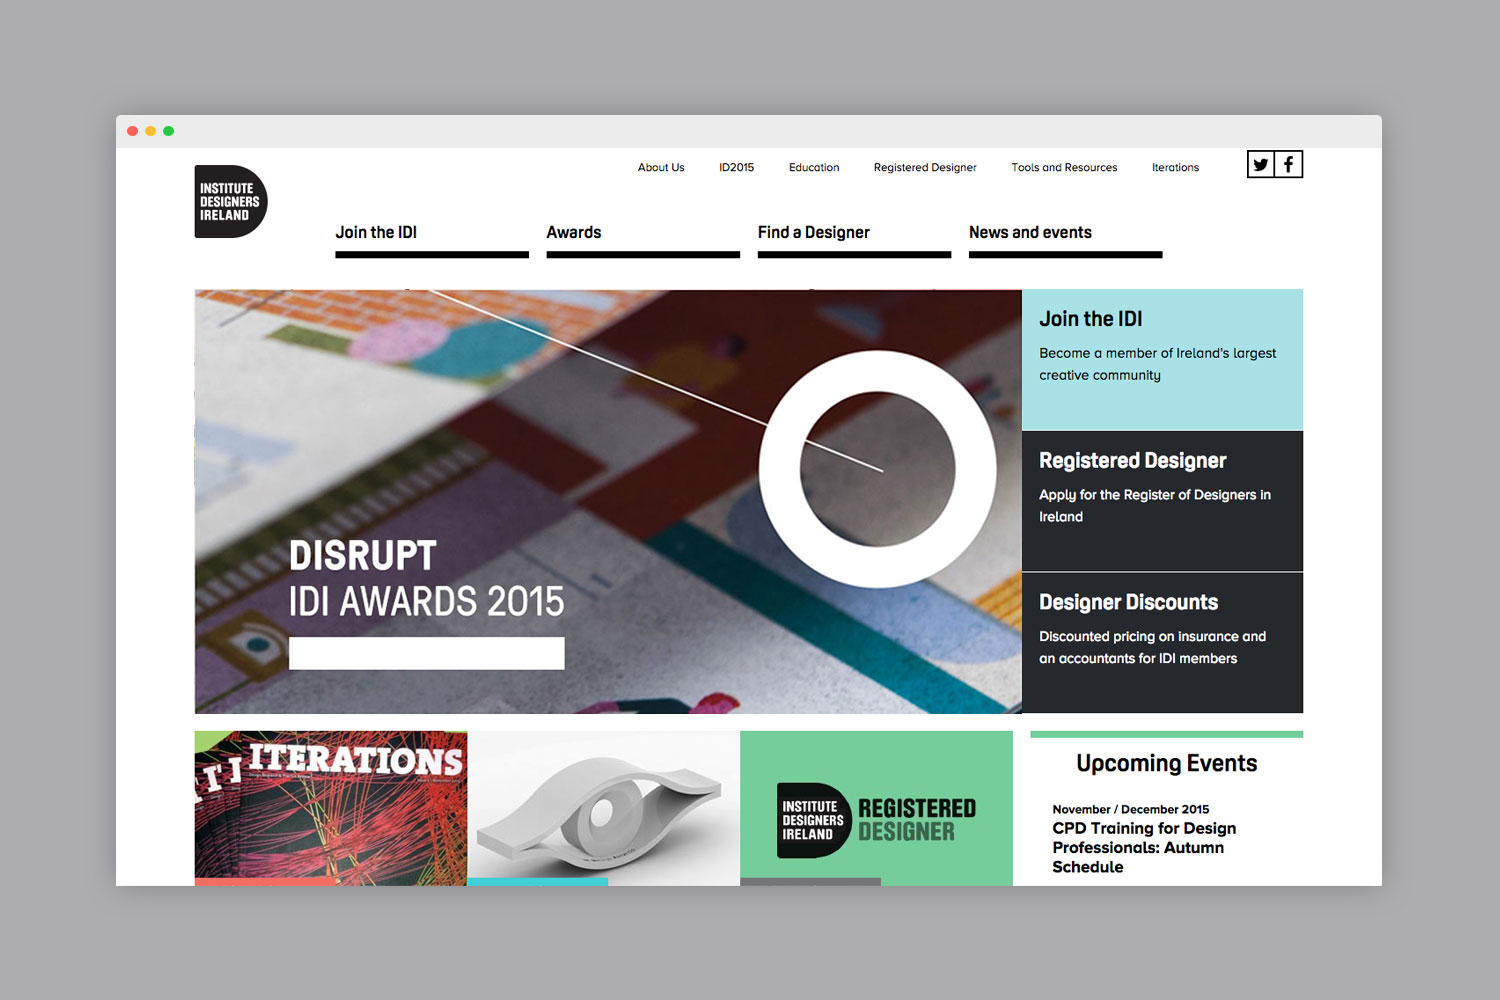 Cover image: Institute of Designers in Ireland